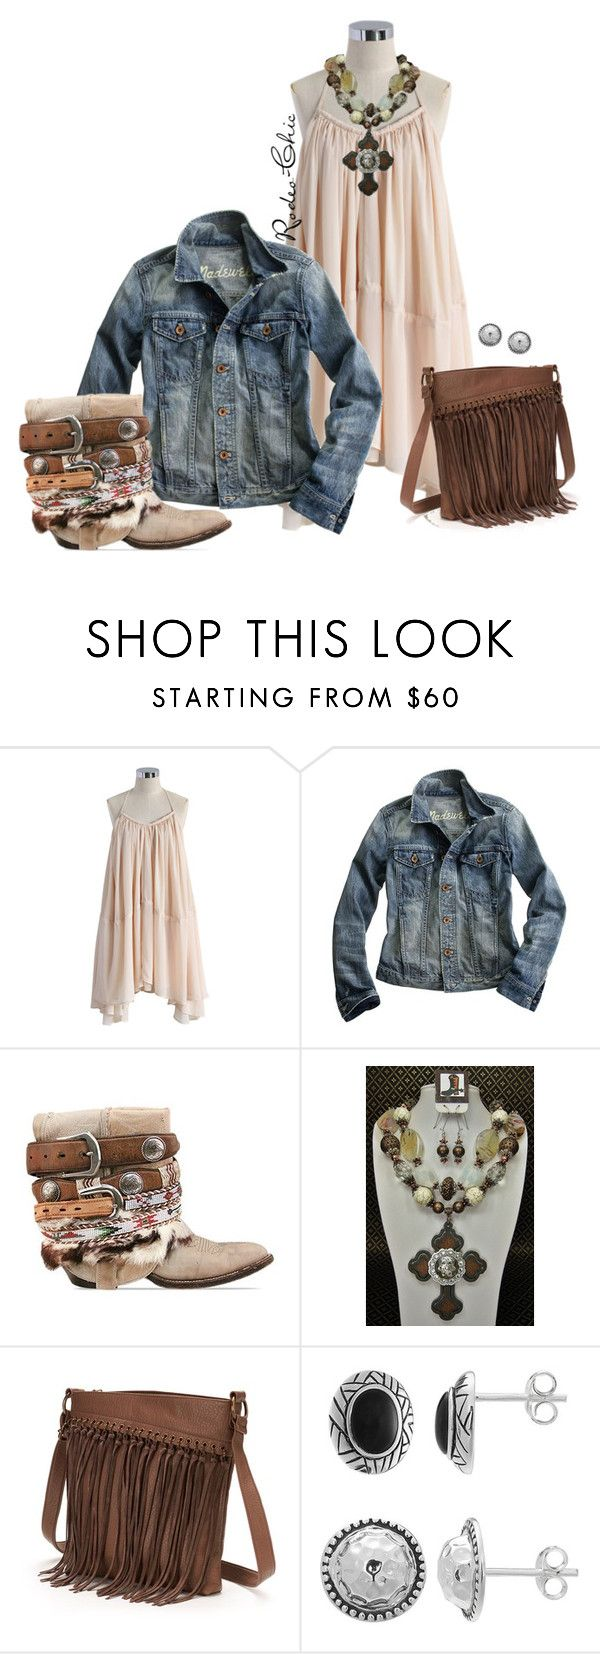 """""""Luckenback Texas"""" by rodeo-chic ❤ liked on Polyvore featuring Chicwish, Madewell, Vintage, SONOMA Goods for Life, country, concert, western, cowboyboots and trapezedress"""